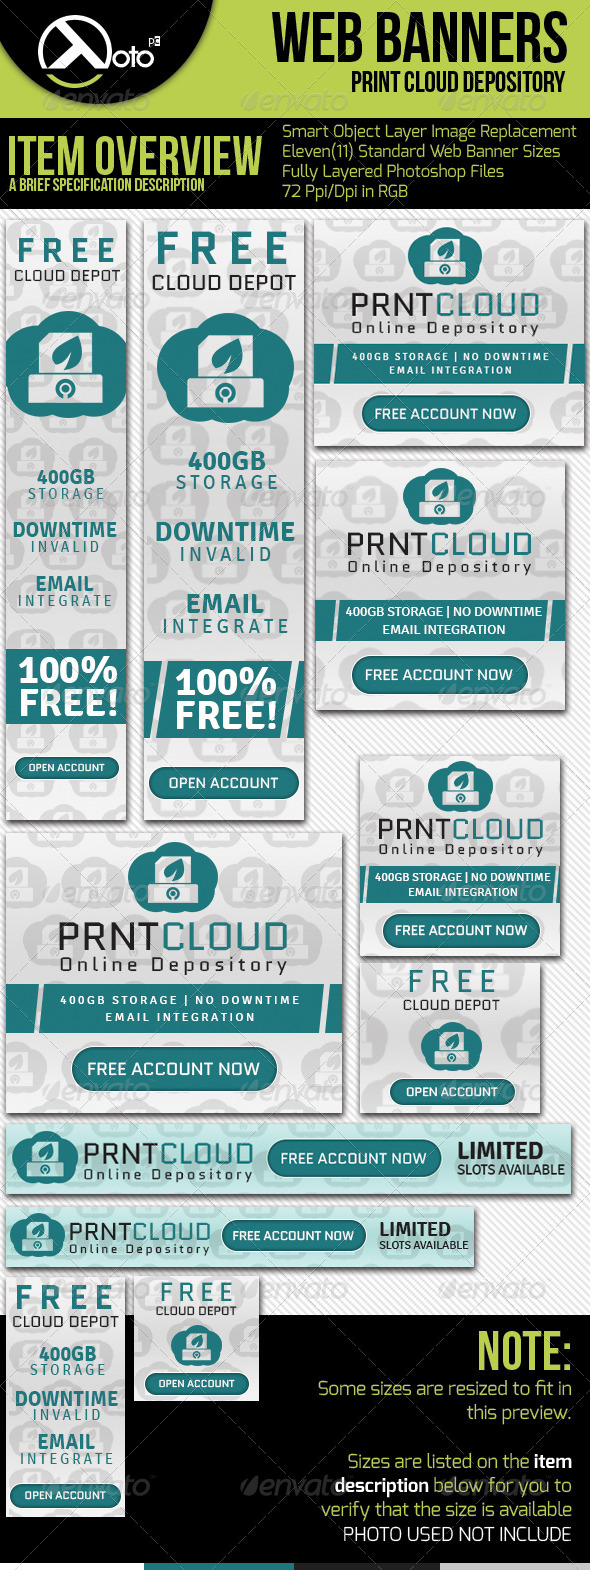 GraphicRiver Print Cloud Online Depository Web Banners 6393881